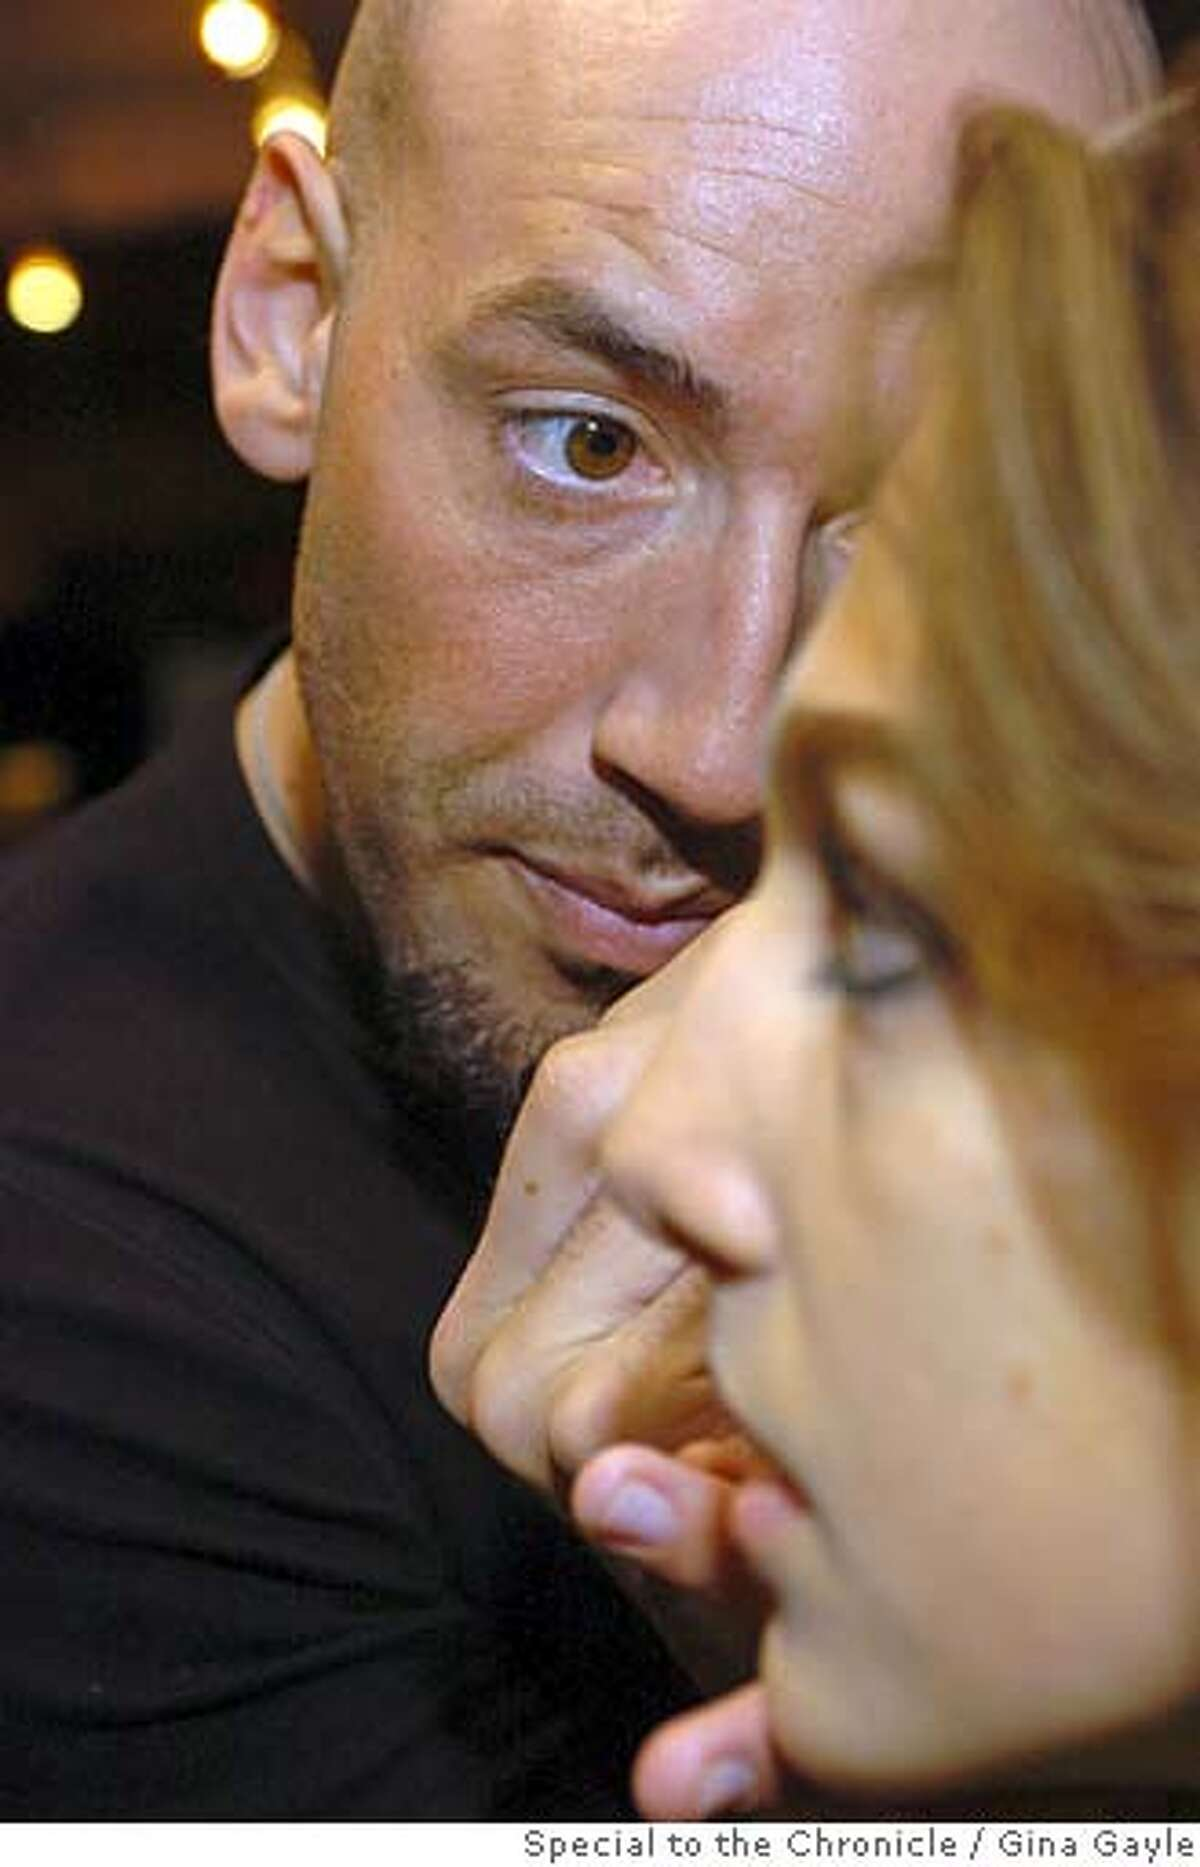 San Francisco based MAC makeup artist Victor Cembellin does makeup on model Bruna Sottili of Brazil for the Three as Four Fashion Show at the National Arts Club in Manhattan for New York Fashion Week 2007 on February, 3, 2007. (photo by Gina Gayle).